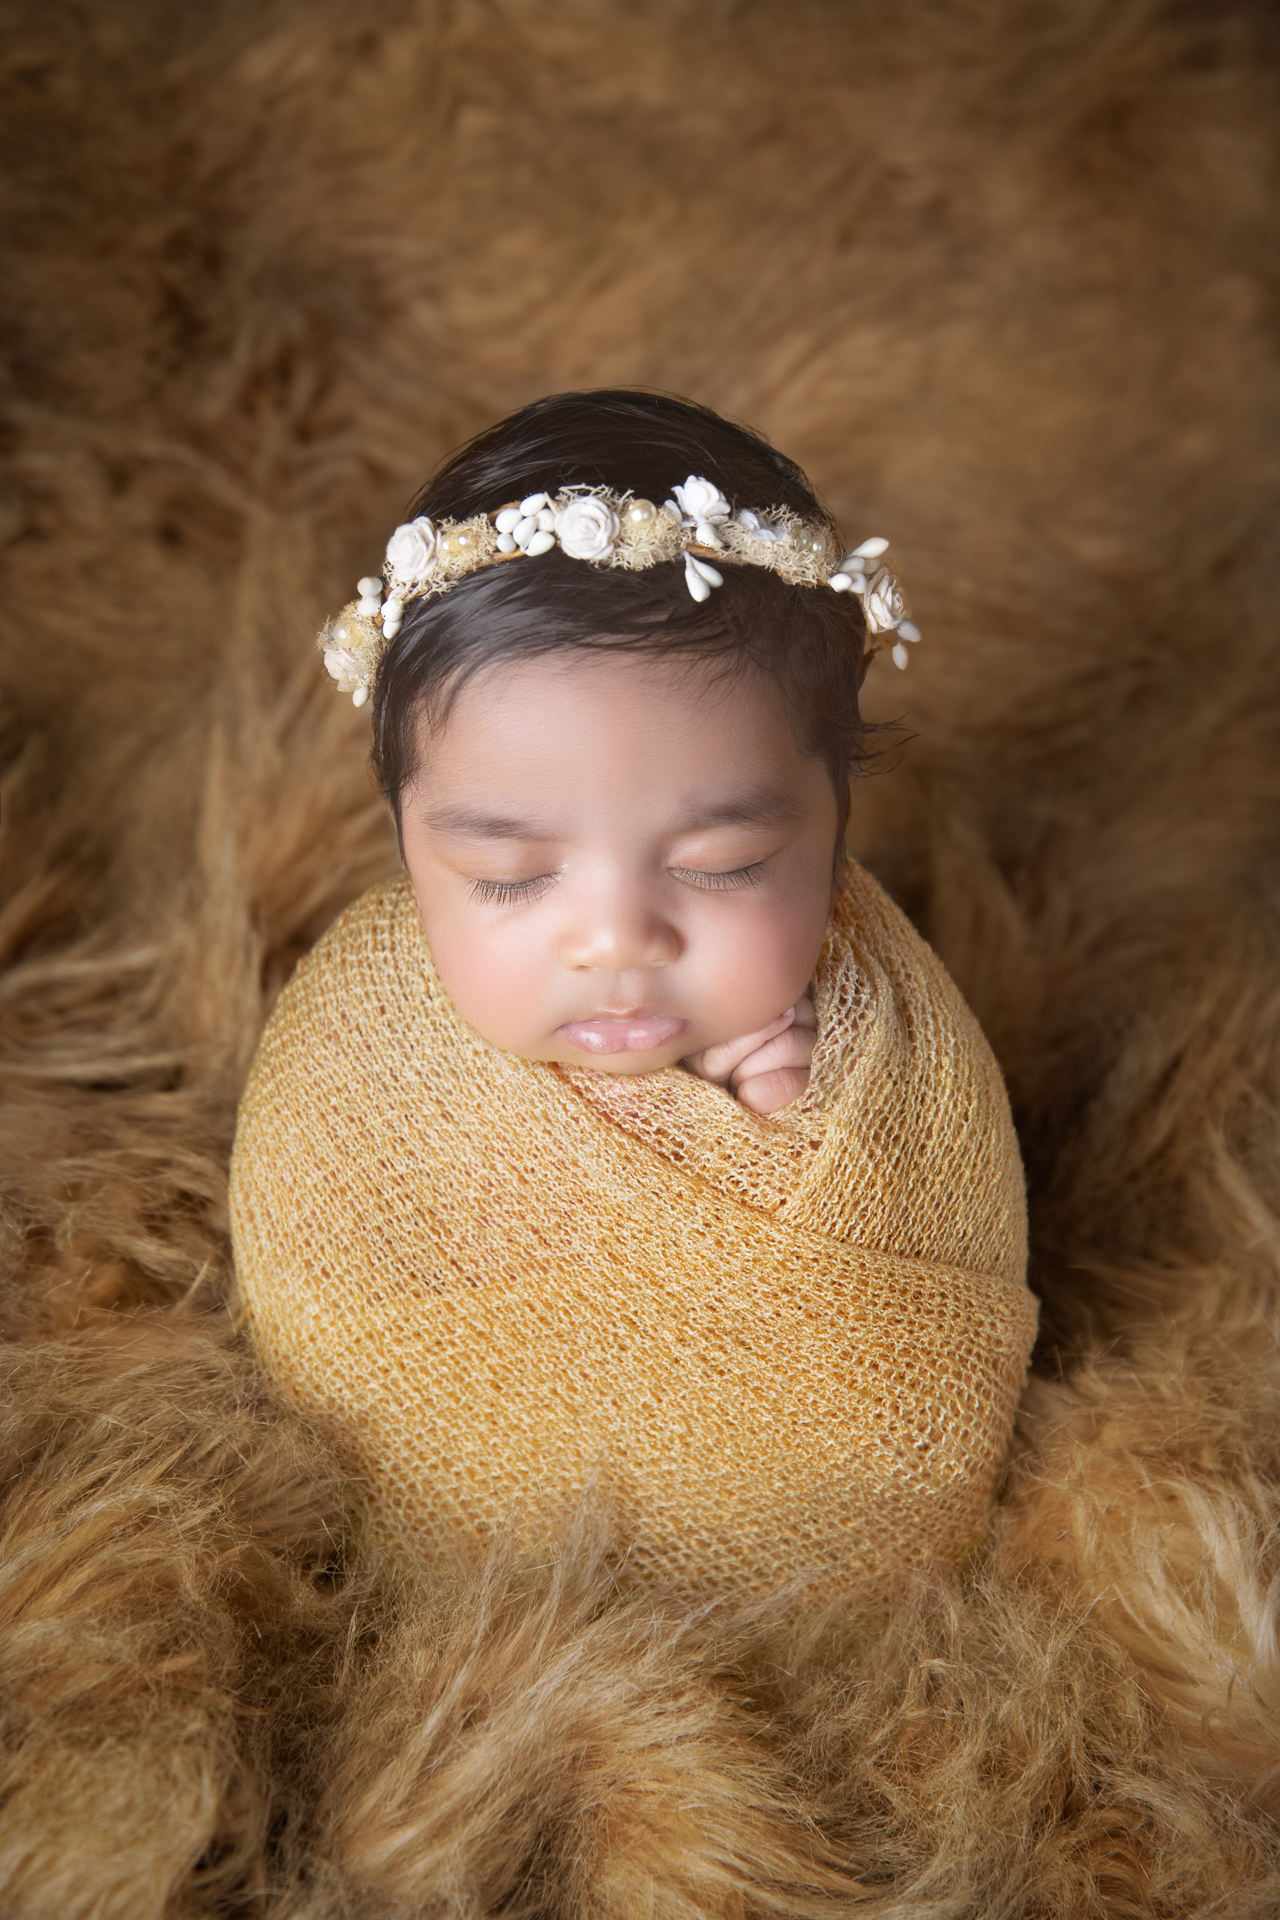 Newborn wearing brown wrap and headband rests on brown fluffy carpet.